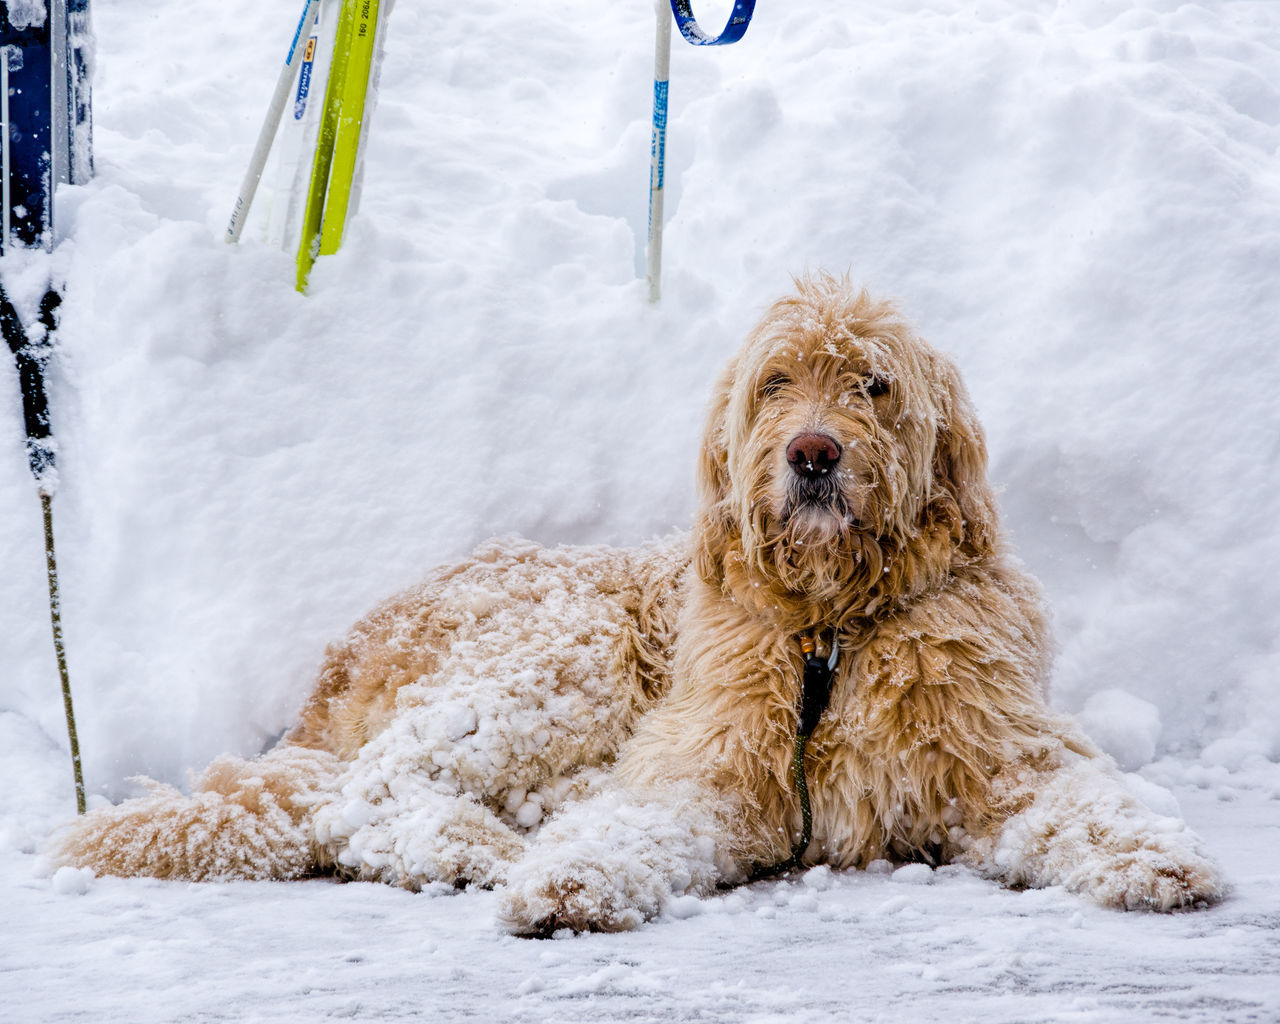 Animal Themes Cold Temperature Day Dog Domestic Animals Looking At Camera Mammal Mixed-breed Dog Nature No People One Animal Outdoors Pets Poodle Portrait Snow Winter